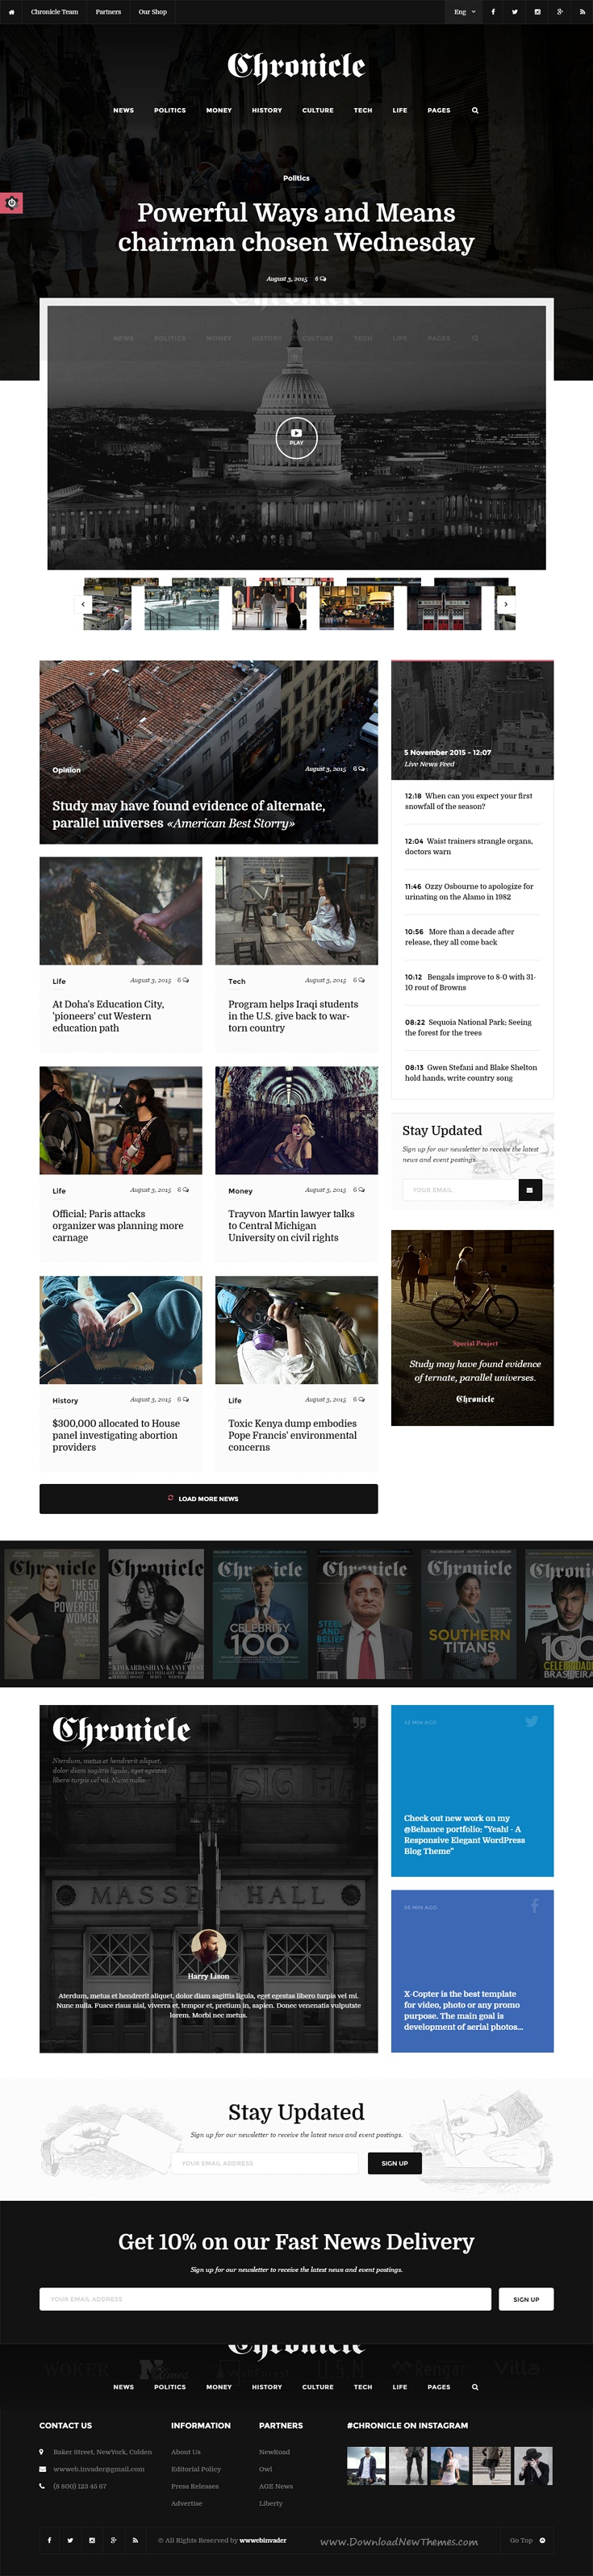 Chronicle - Premium News and Magazine HTML5 Template | Template and ...